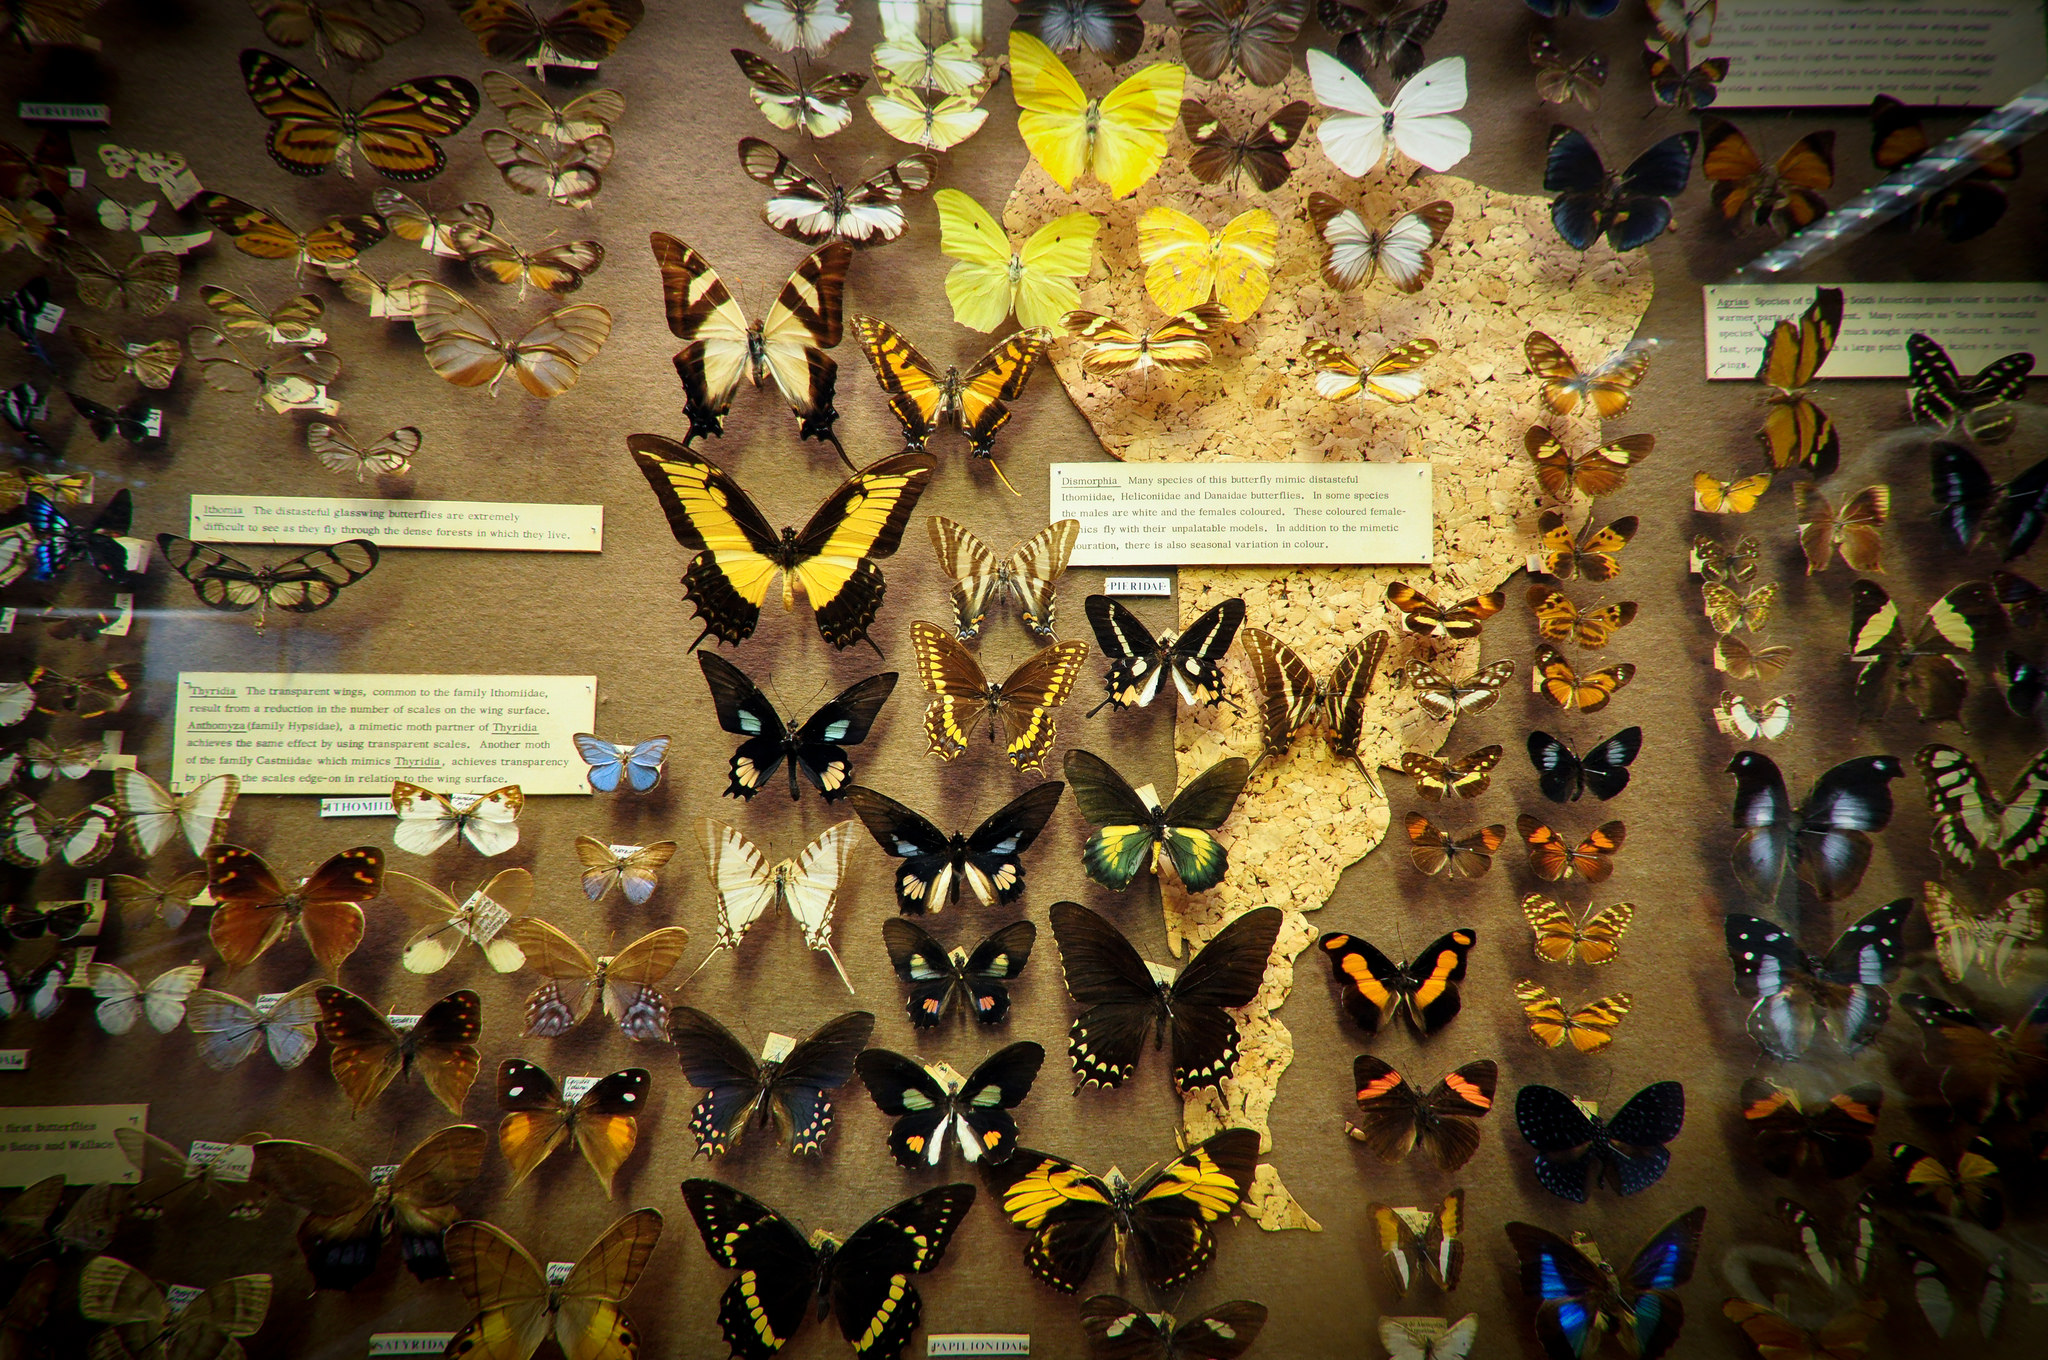 Wonders Of Museum Of Natural History